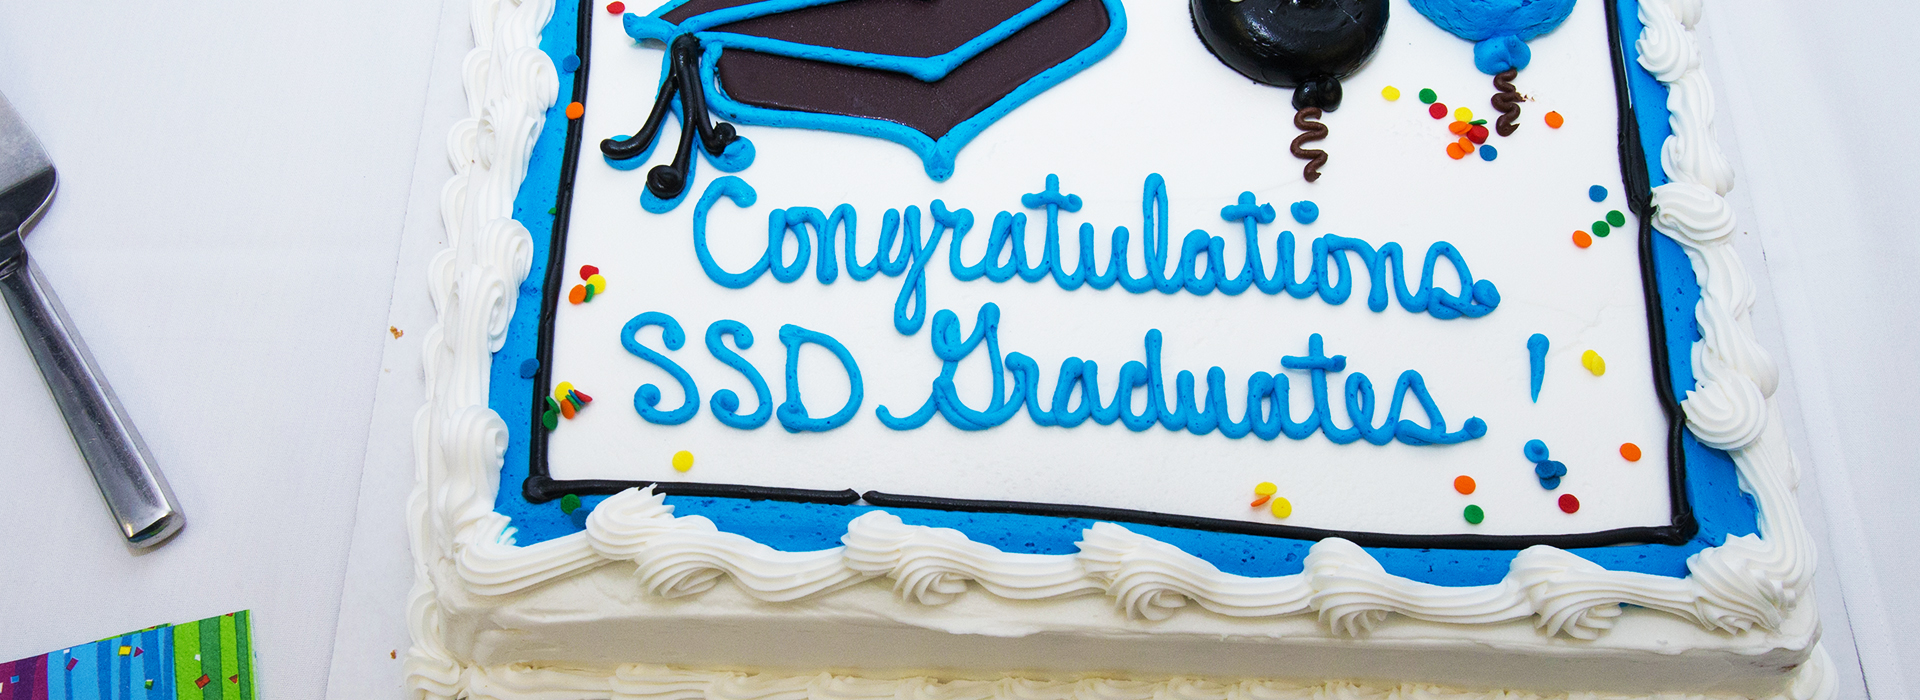 CSUSB will host Students with Disabilities graduation reception